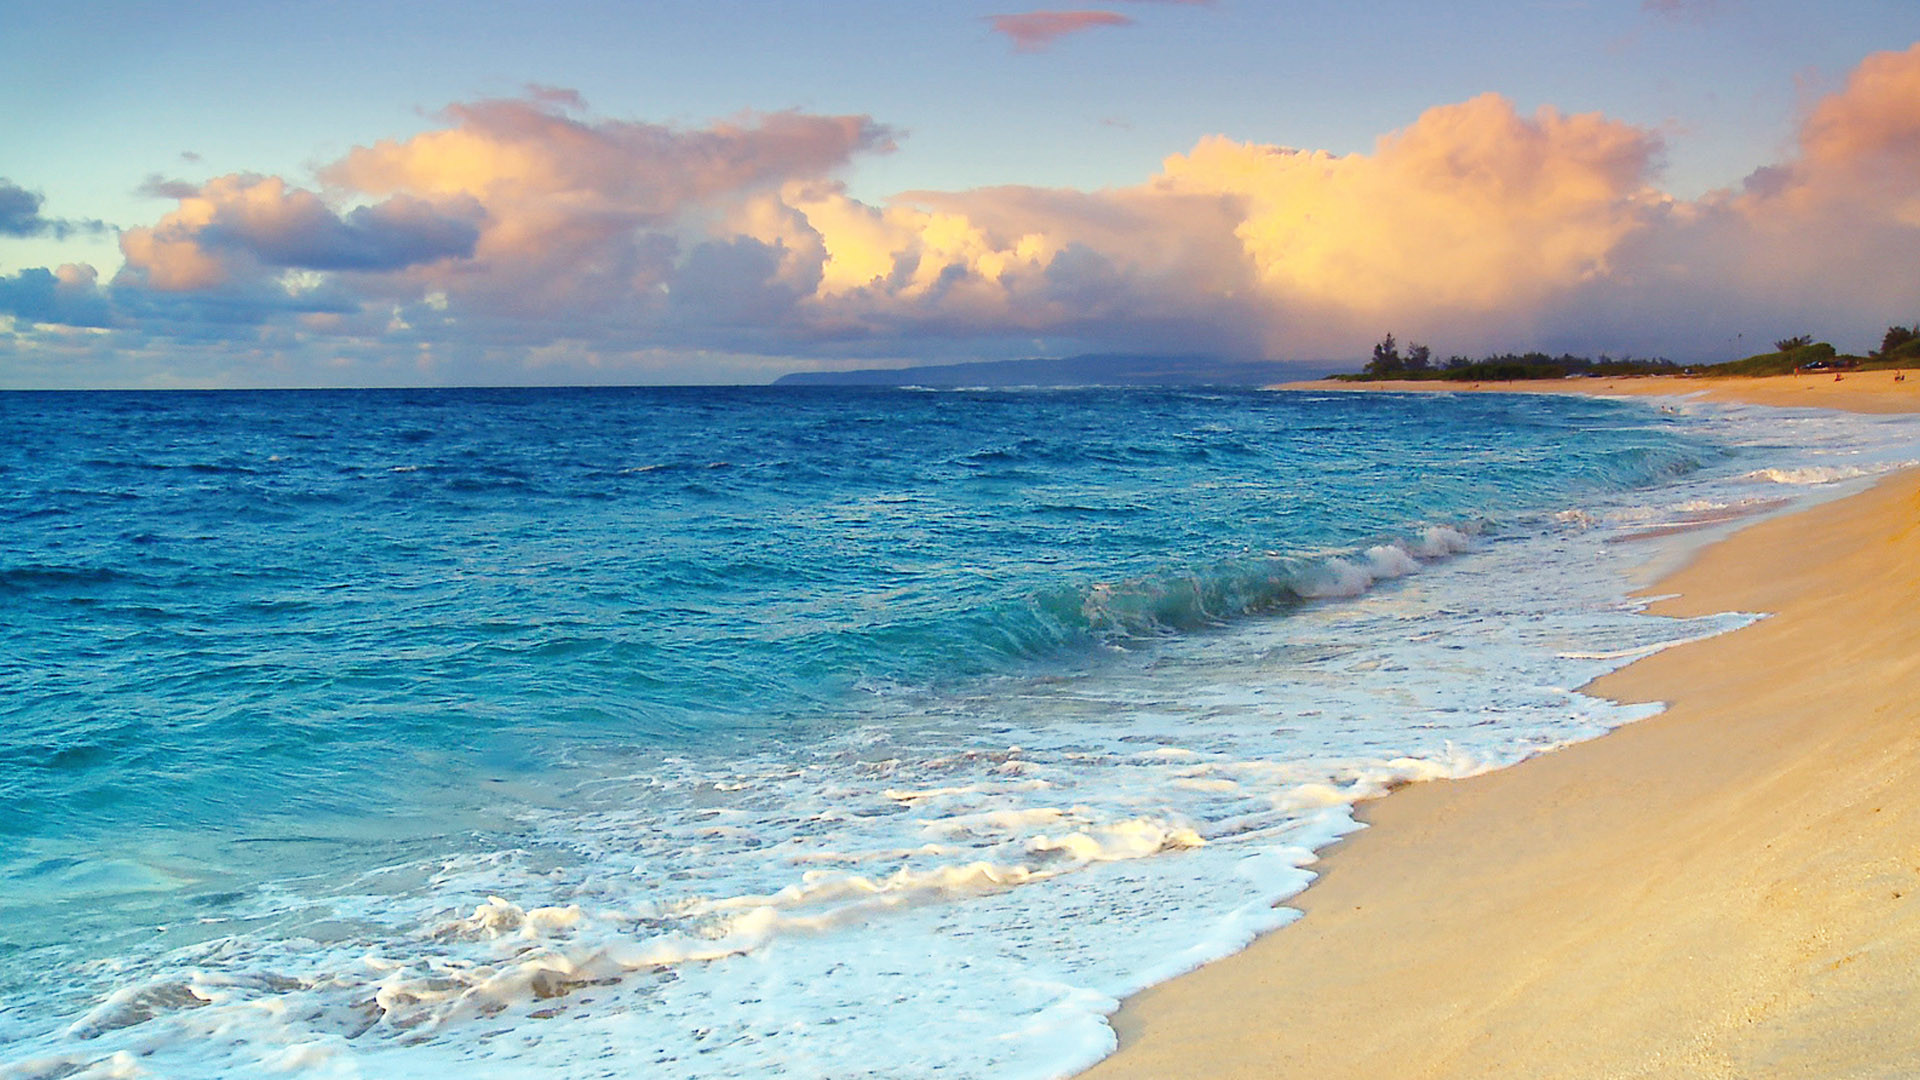 summer beach backgrounds (58+ images)